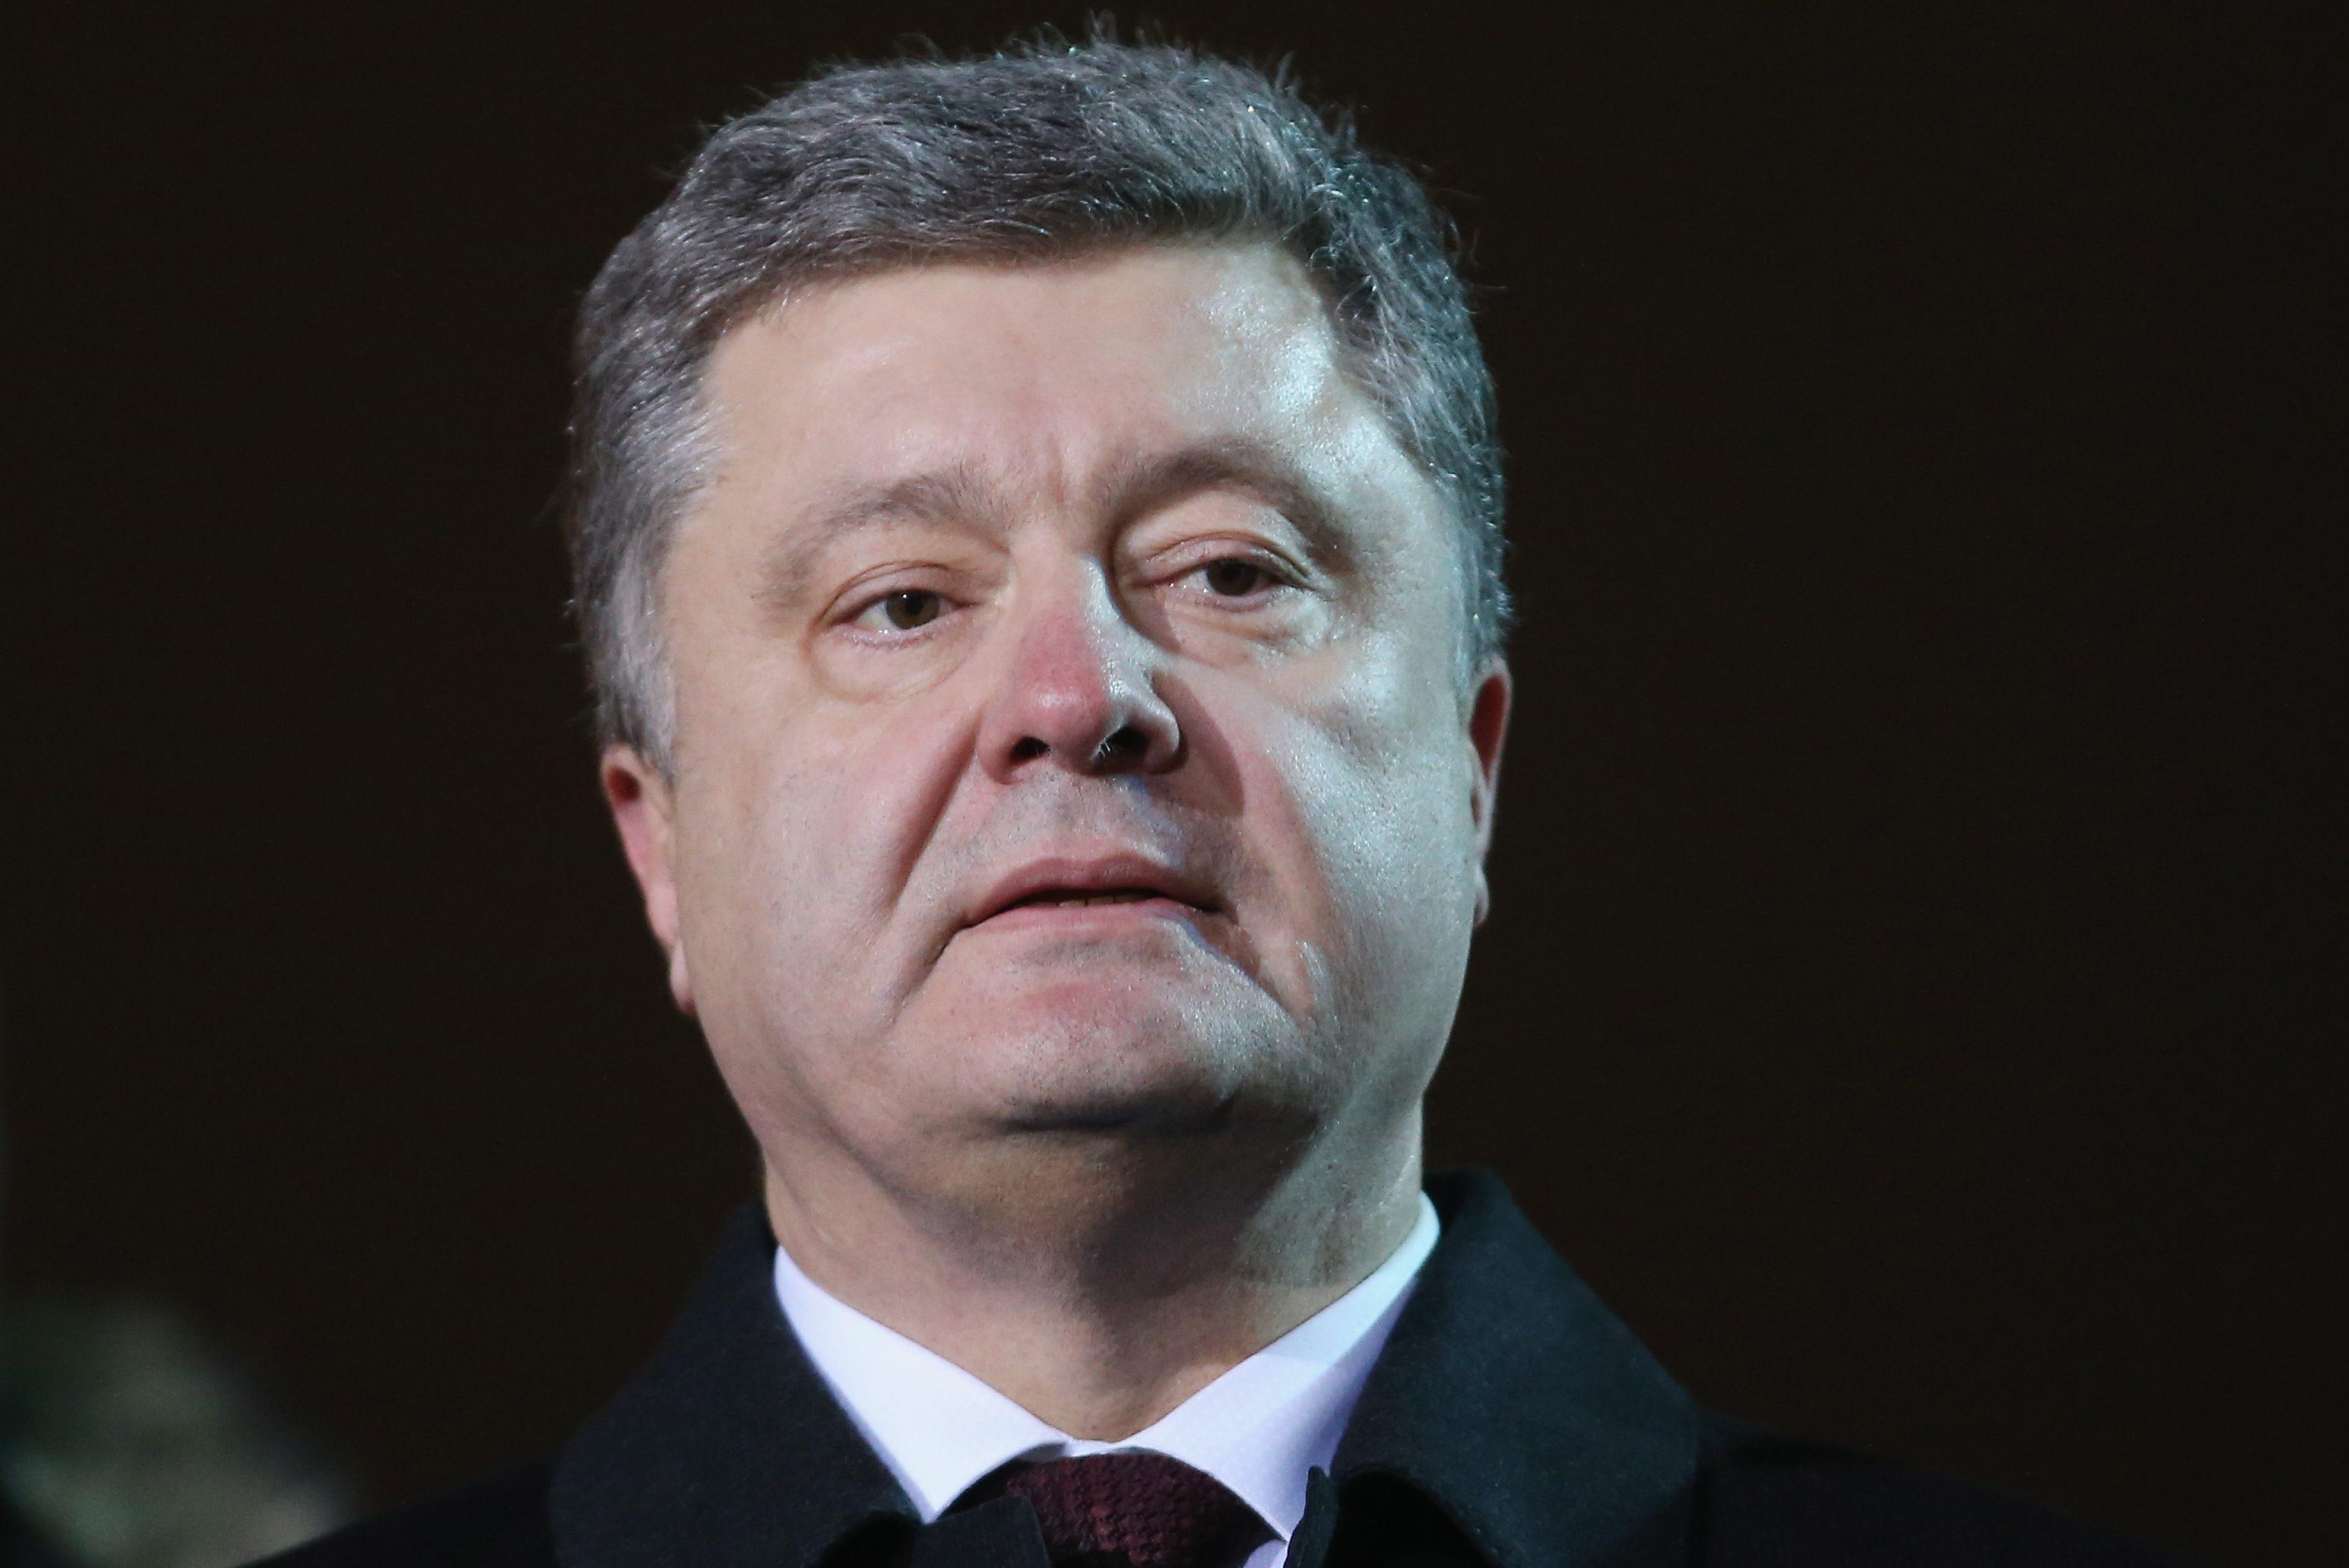 KIEV, UKRAINE - FEBRUARY 20:  Ukrainian President Petro Poroshenko attends an evening ceremony to commemorate victims of the Maidan uprising one year ago at Maidan square on February 20, 2015 in Kiev, Ukraine. Ukraine is commemorating the first anniversary of the February 20, 2014 sniper attacks that killed dozens of protesters on the Maidan and were followed by the ouster of Ukrainian President Viktor Yanukovich shortly later. Meanwhile fighting between pro-Ukrainian troops and pro-Russian separatists is continuing in the Donbas region of eastern Ukraine despite the recent Minsk ceasefire agreements.  (Photo by Sean Gallup/Getty Images)